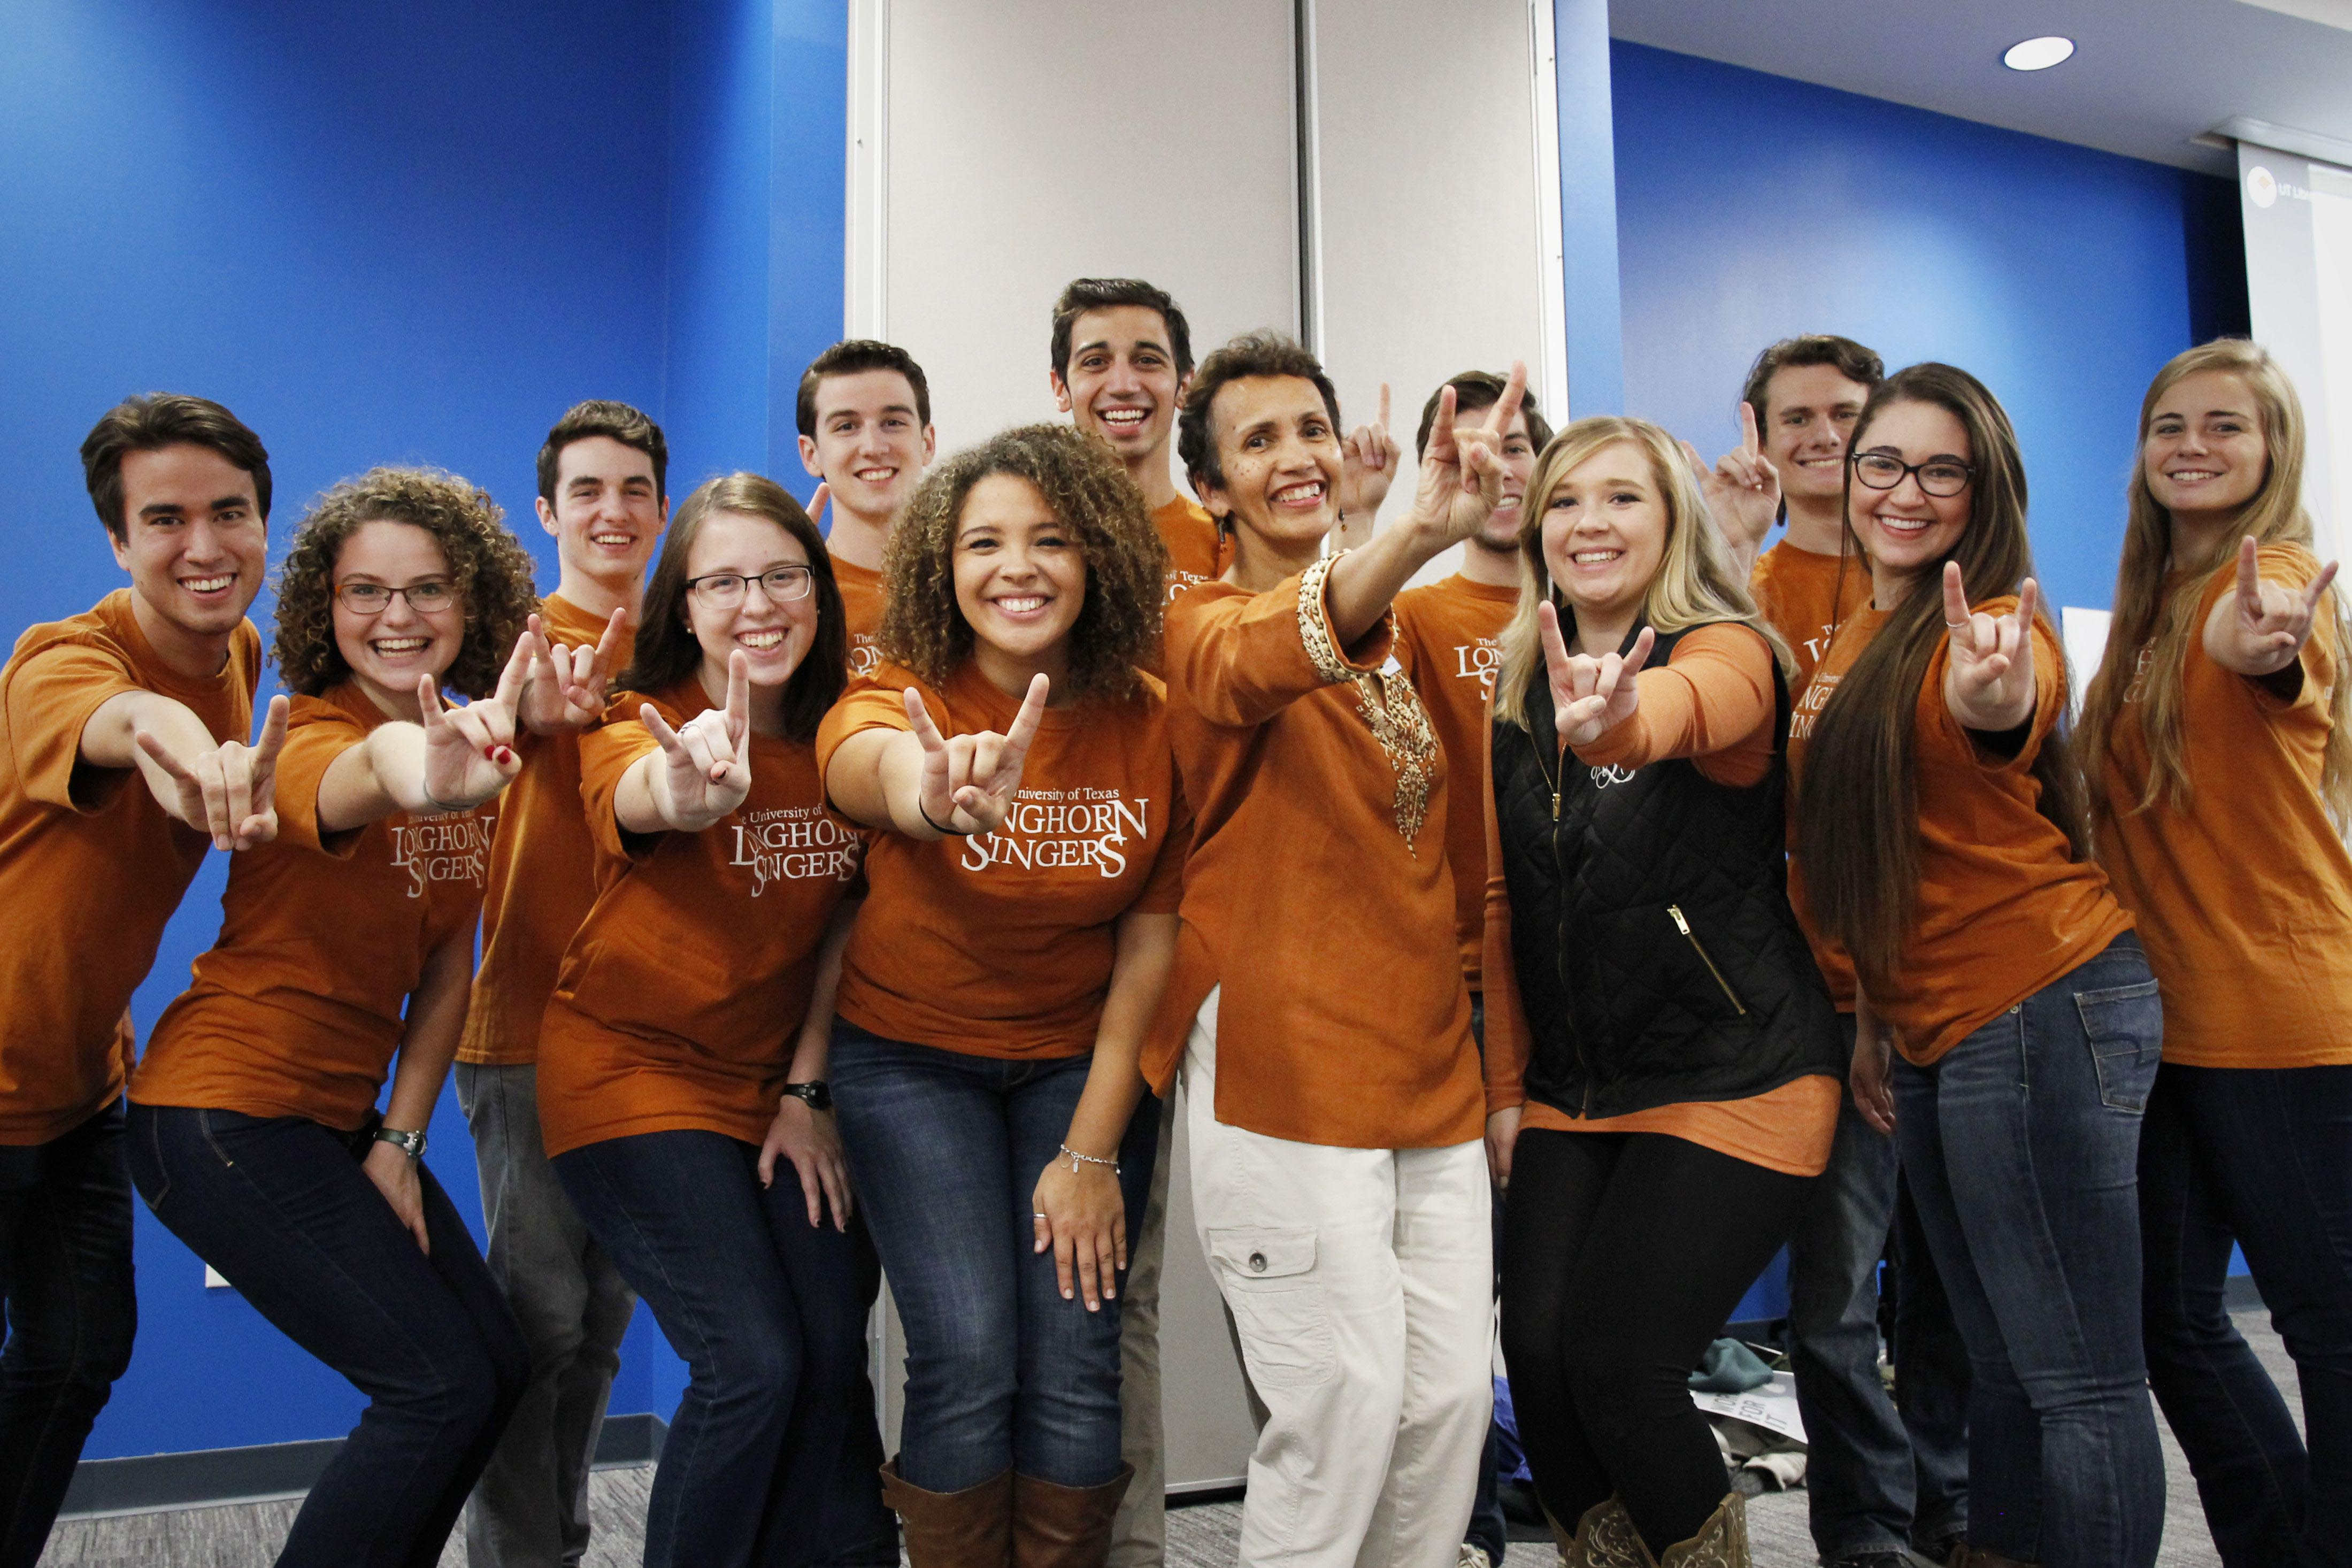 Vice Provost and Director of the UT Libraries Lorraine Harricombe with the Longhorn Singers.